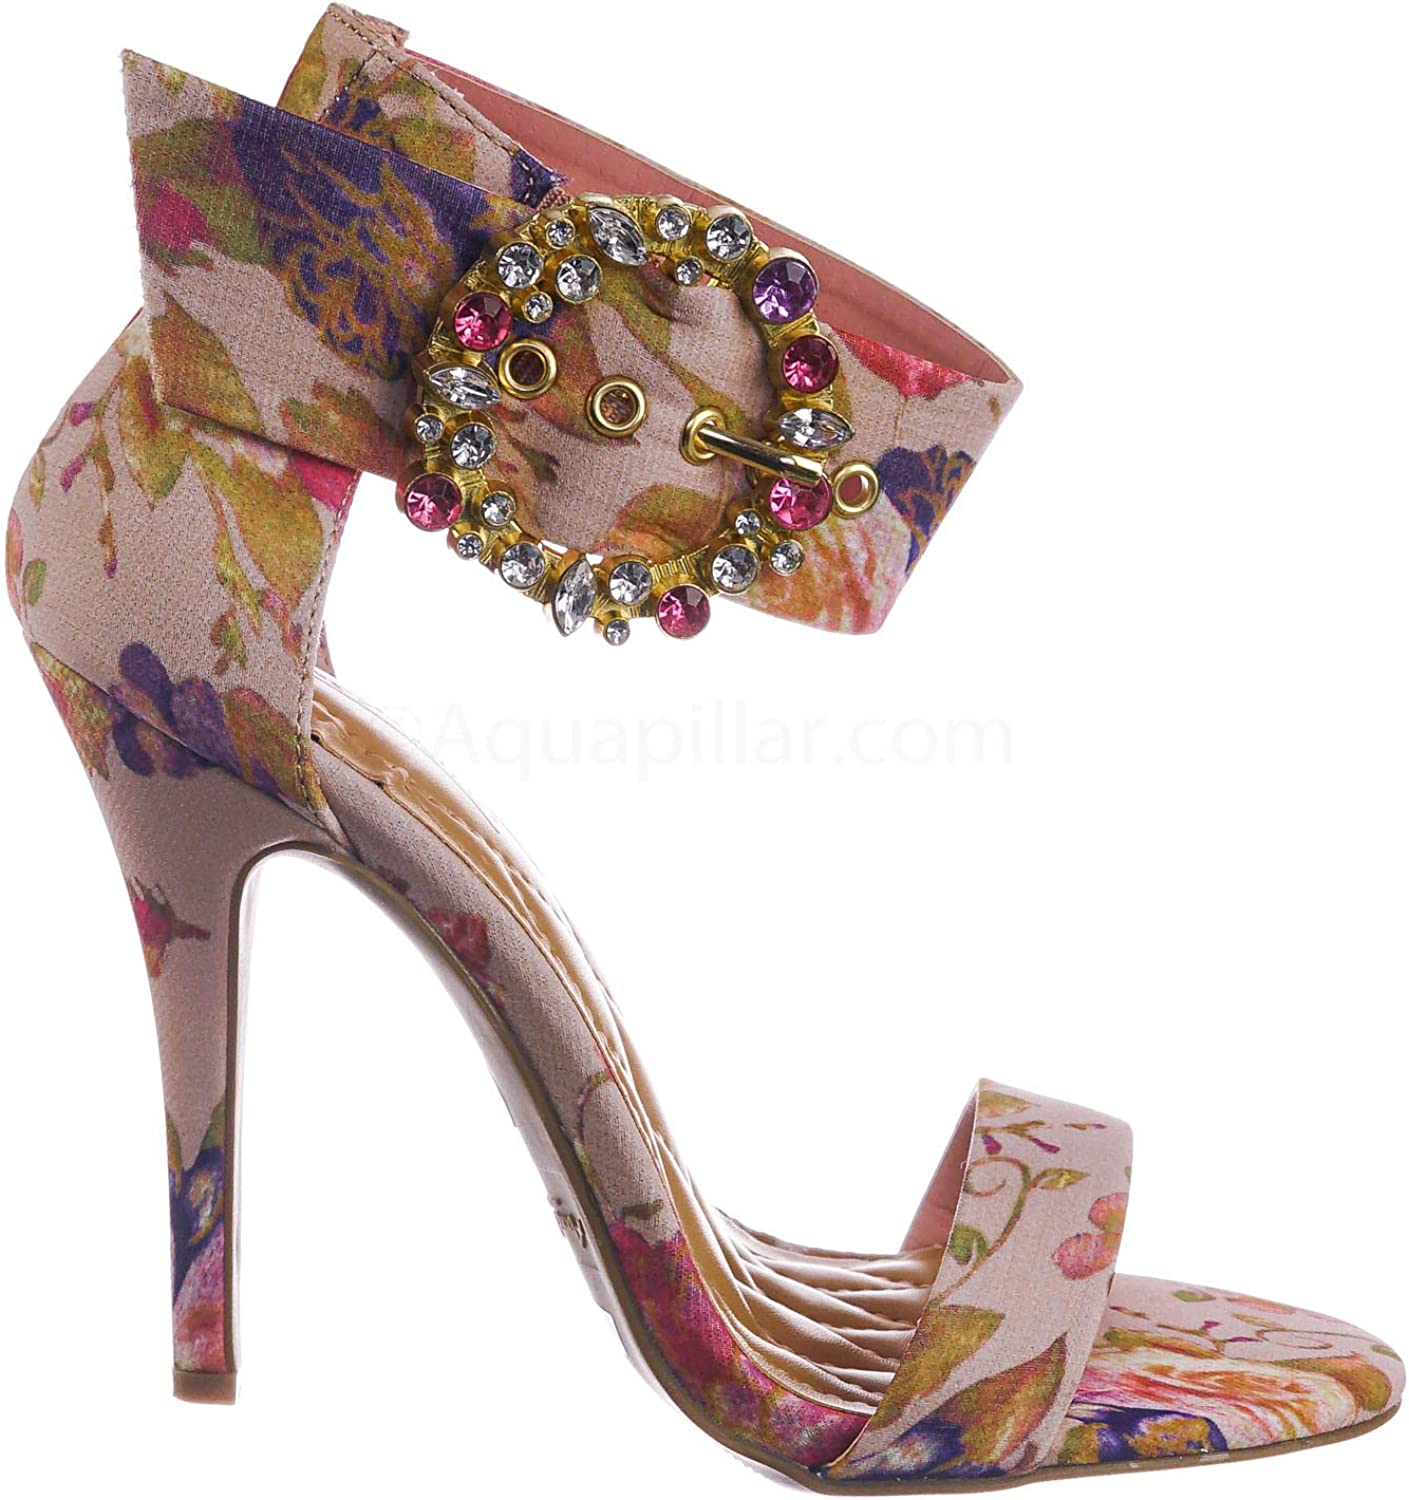 """4.5/"""" High Heel Shoes So Me Pink Neon Sateen Pointy Toe Stiletto Pumps"""